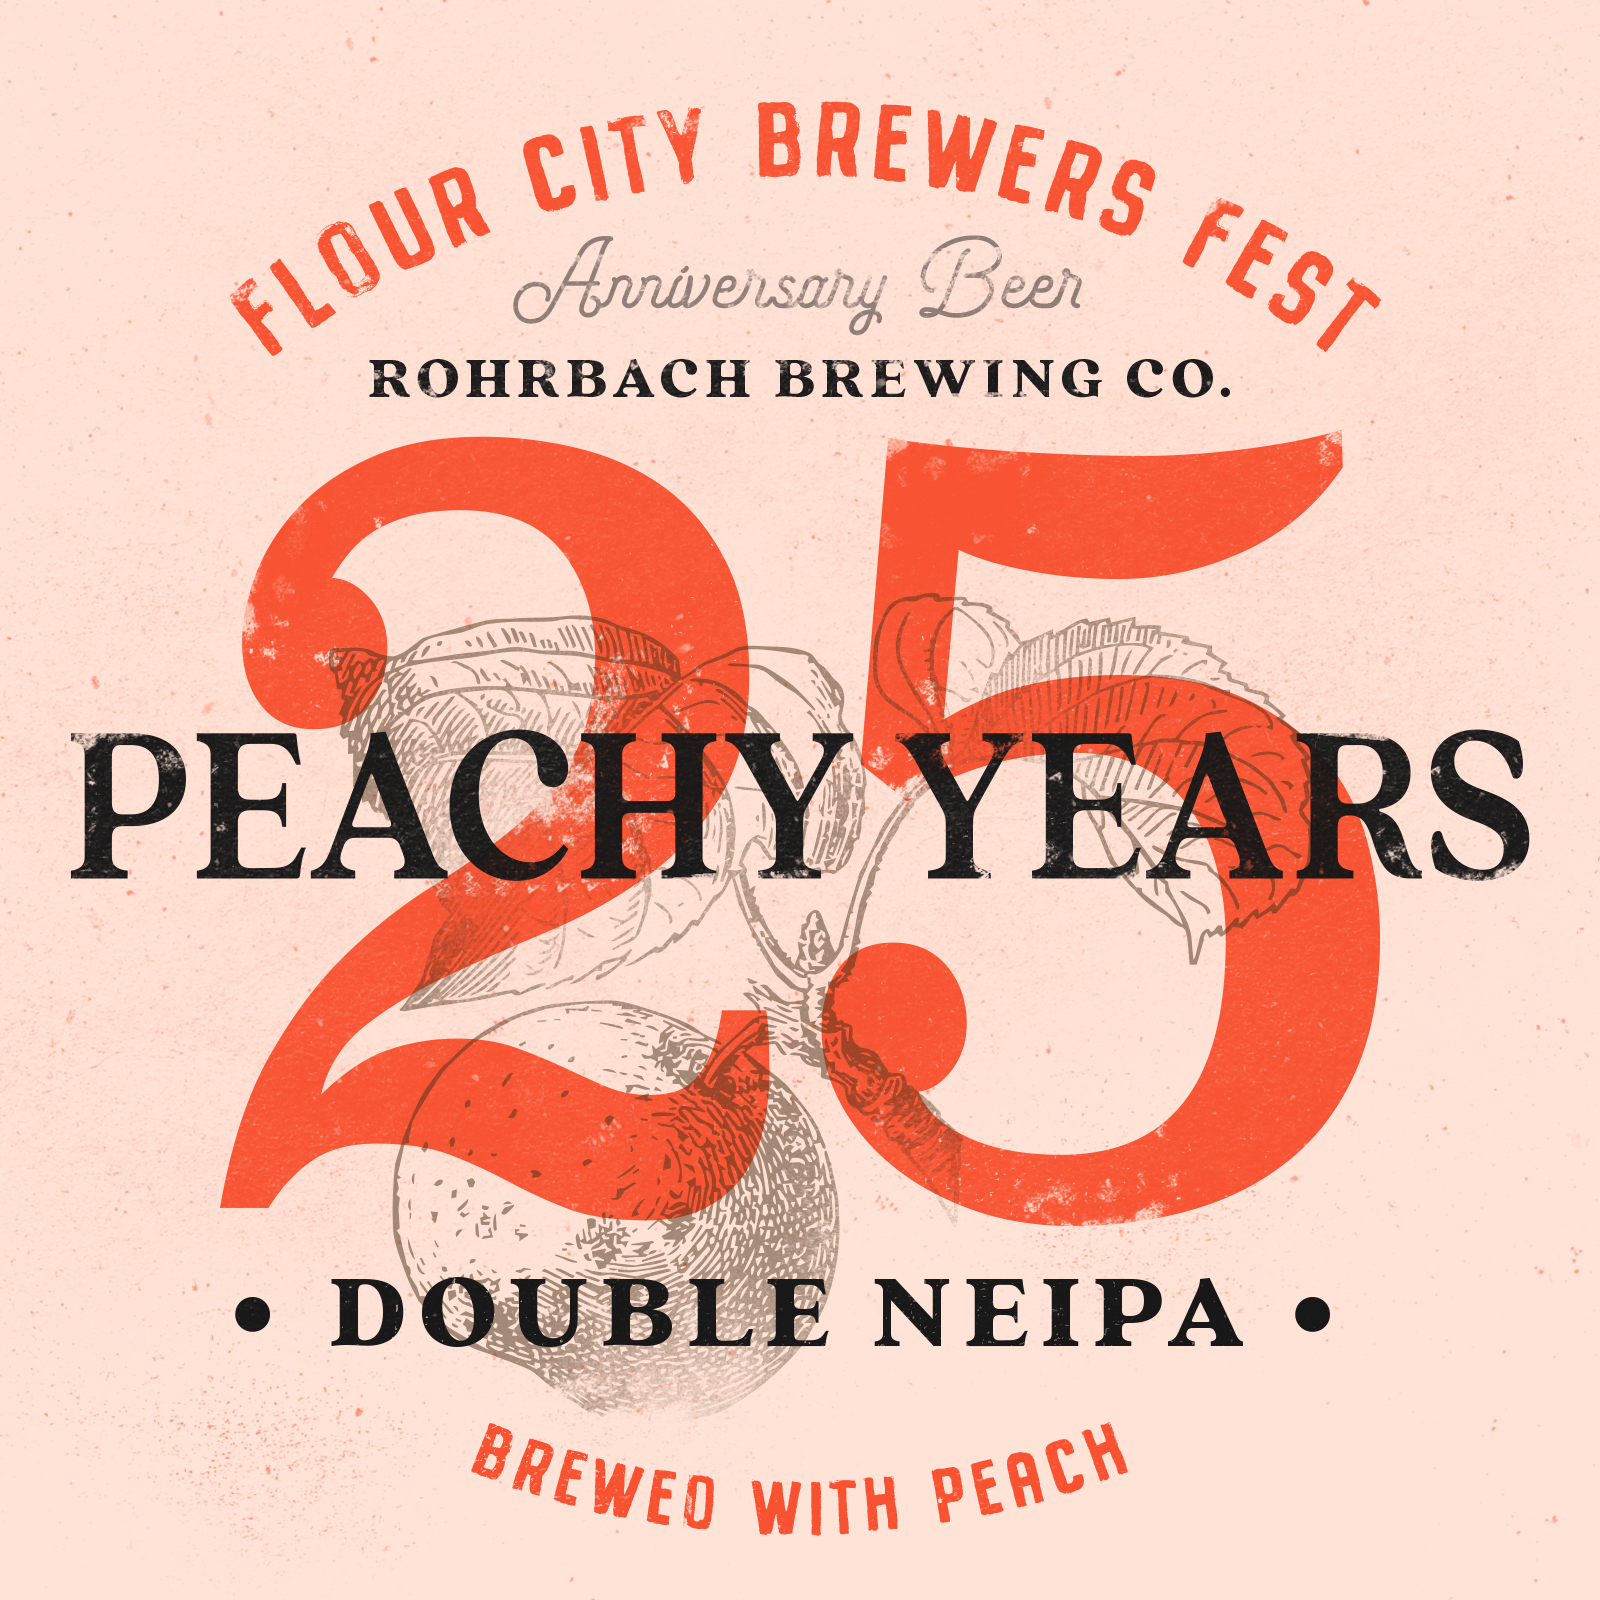 25 Peachy Years NEIPA